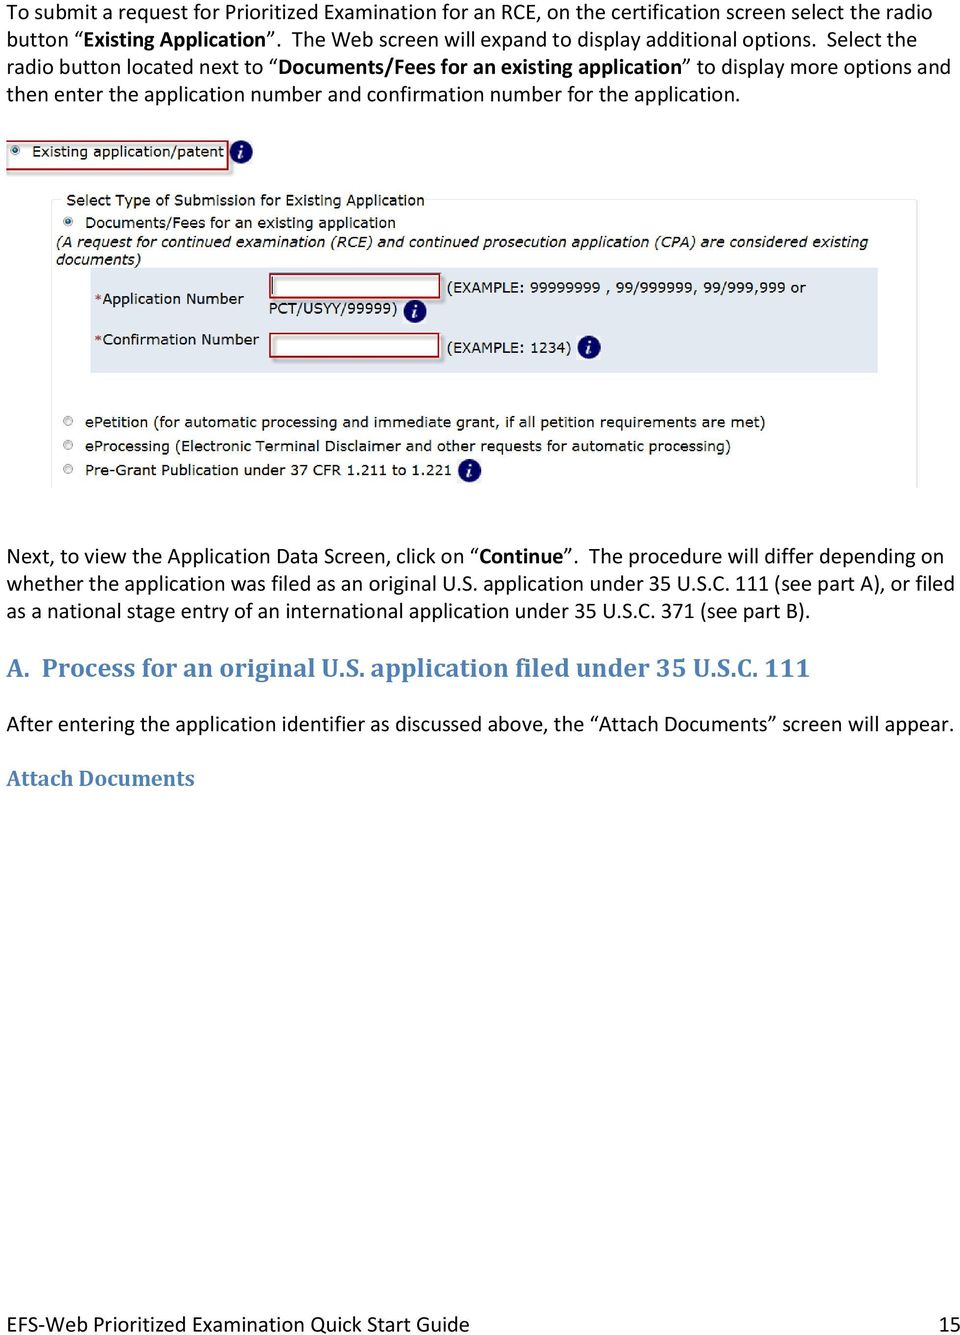 Next, to view the Application Data Screen, click on Continue. The procedure will differ depending on whether the application was filed as an original U.S. application under 35 U.S.C. 111 (see part A), or filed as a national stage entry of an international application under 35 U.